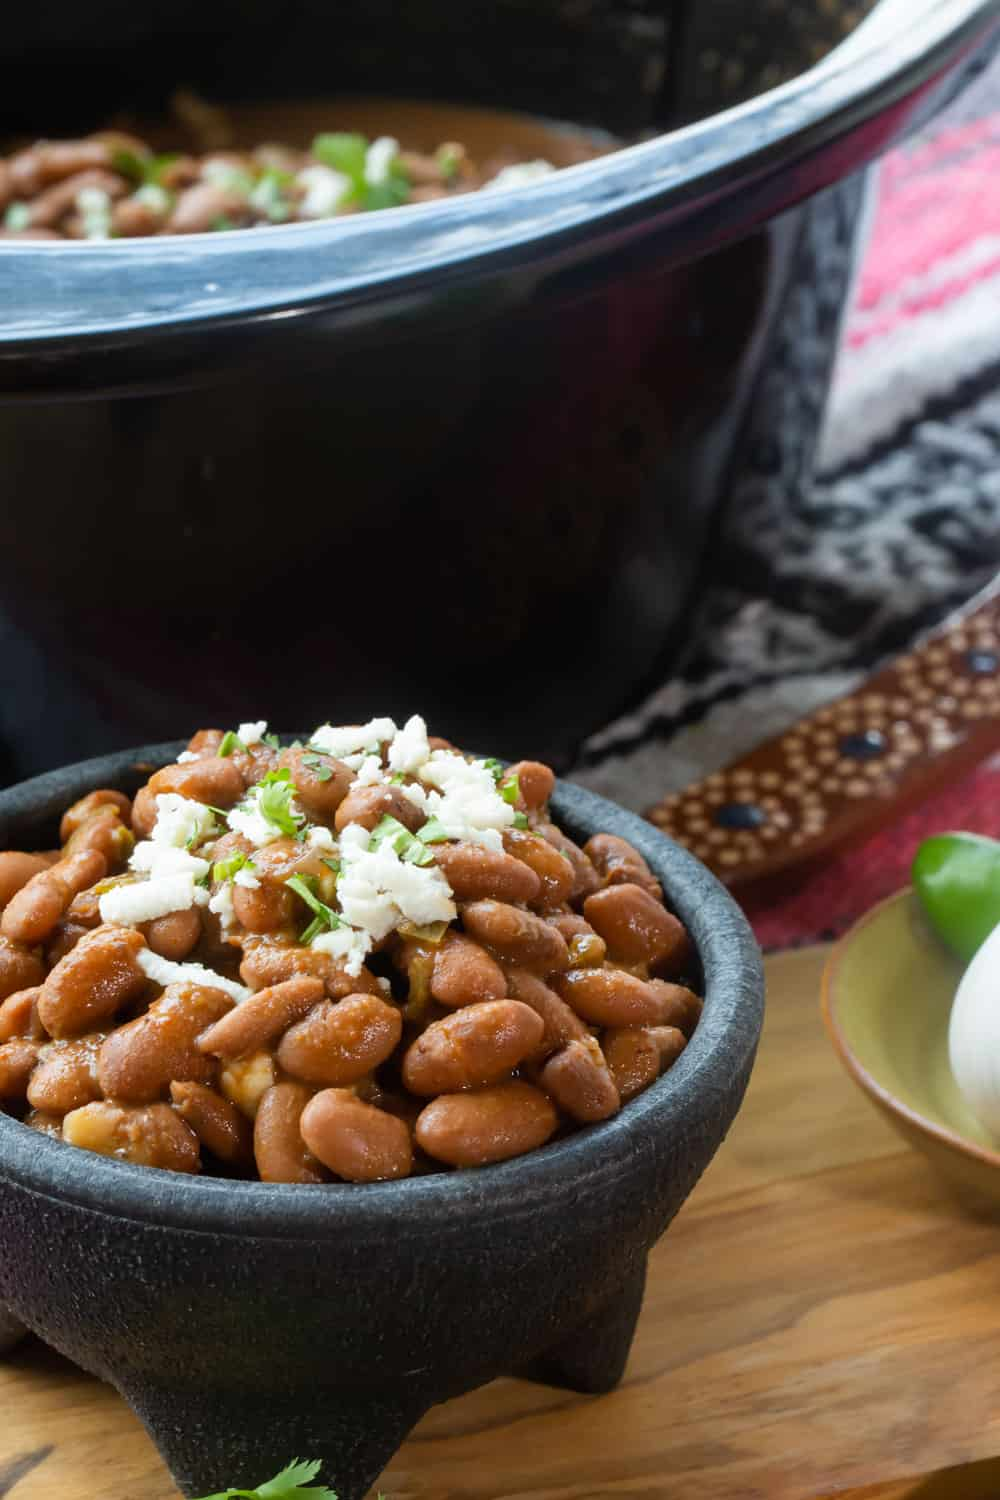 A close up of a cup of beans, topped with garnishes, served in front of a crockpot.